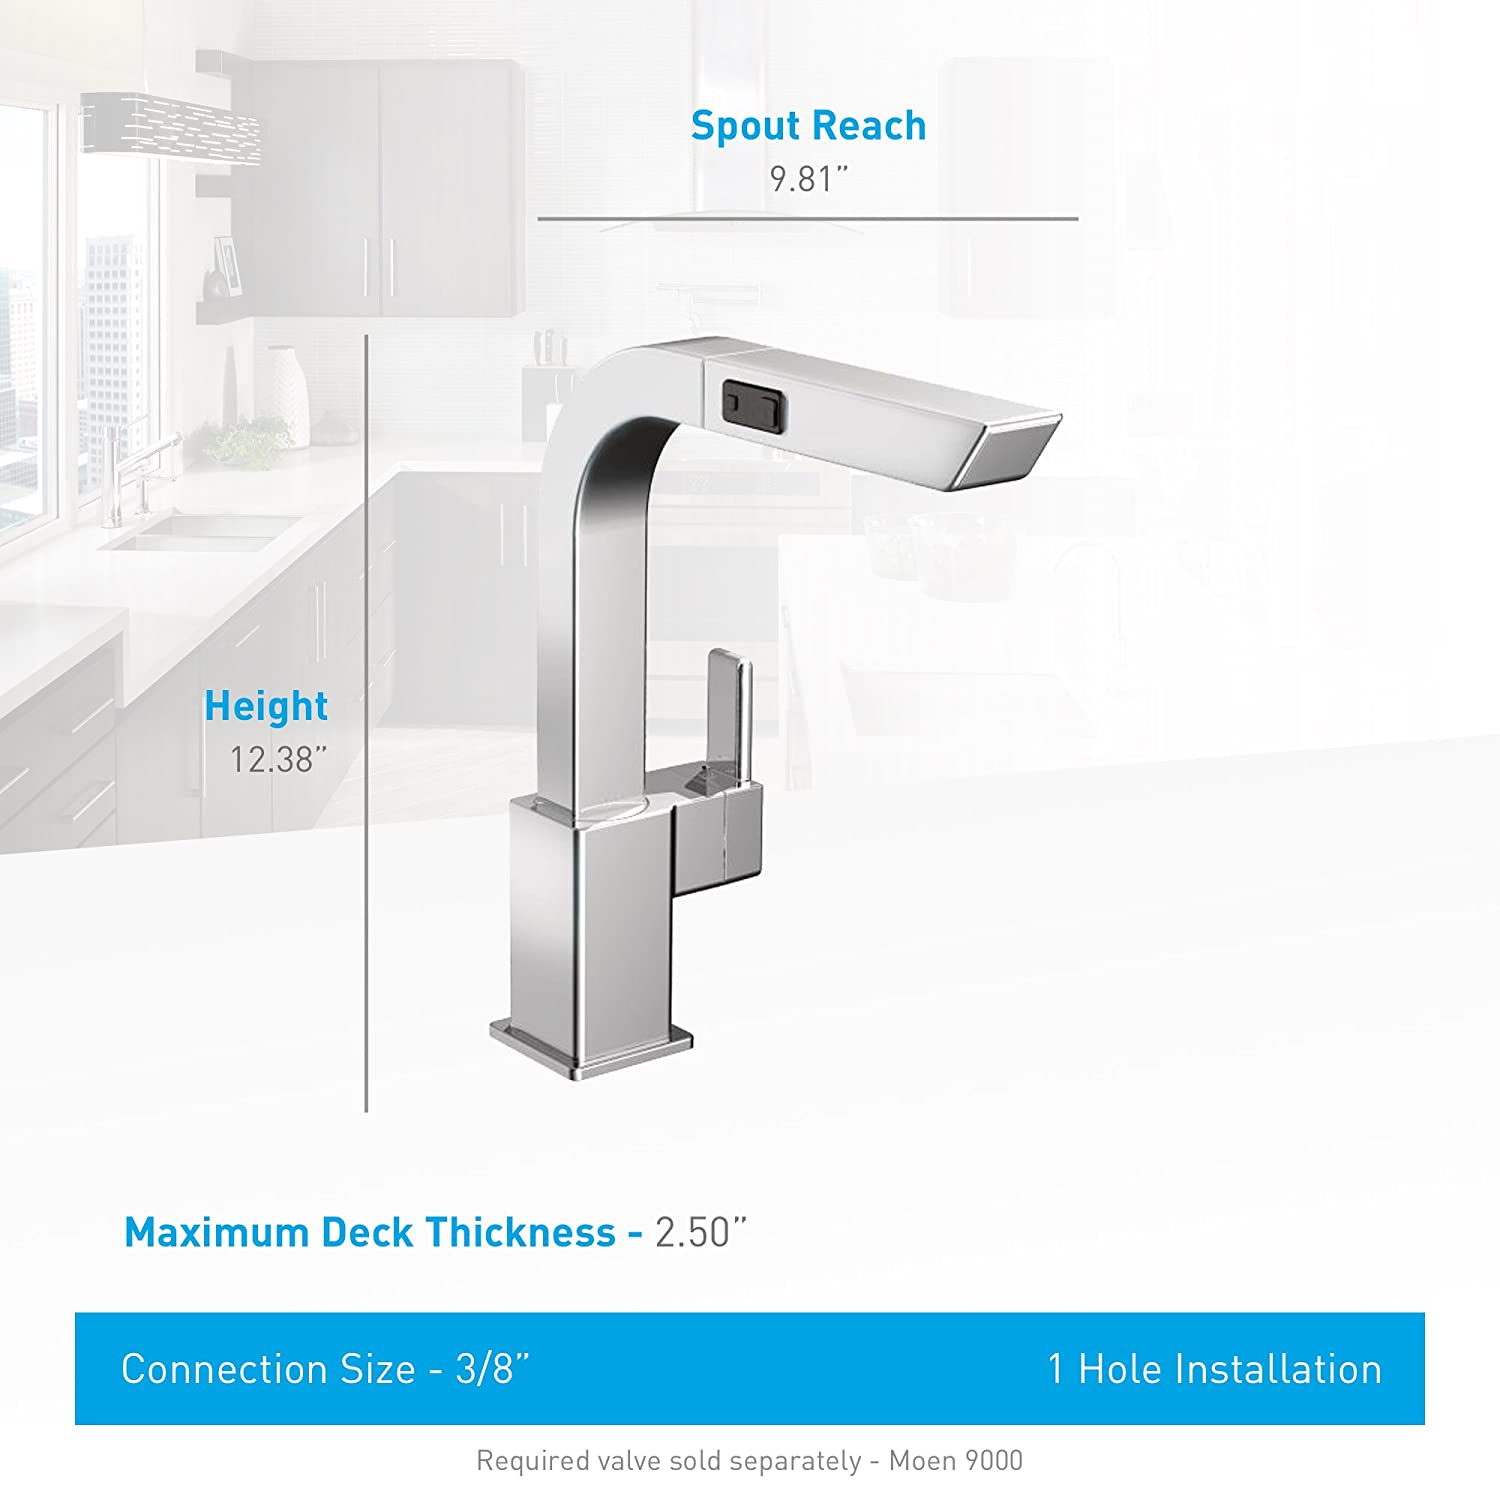 number size instructions buy of best moen kitchen down company pull breathtaking faucets warranty installation the brands lifetime for what faucet full are sensor telephone